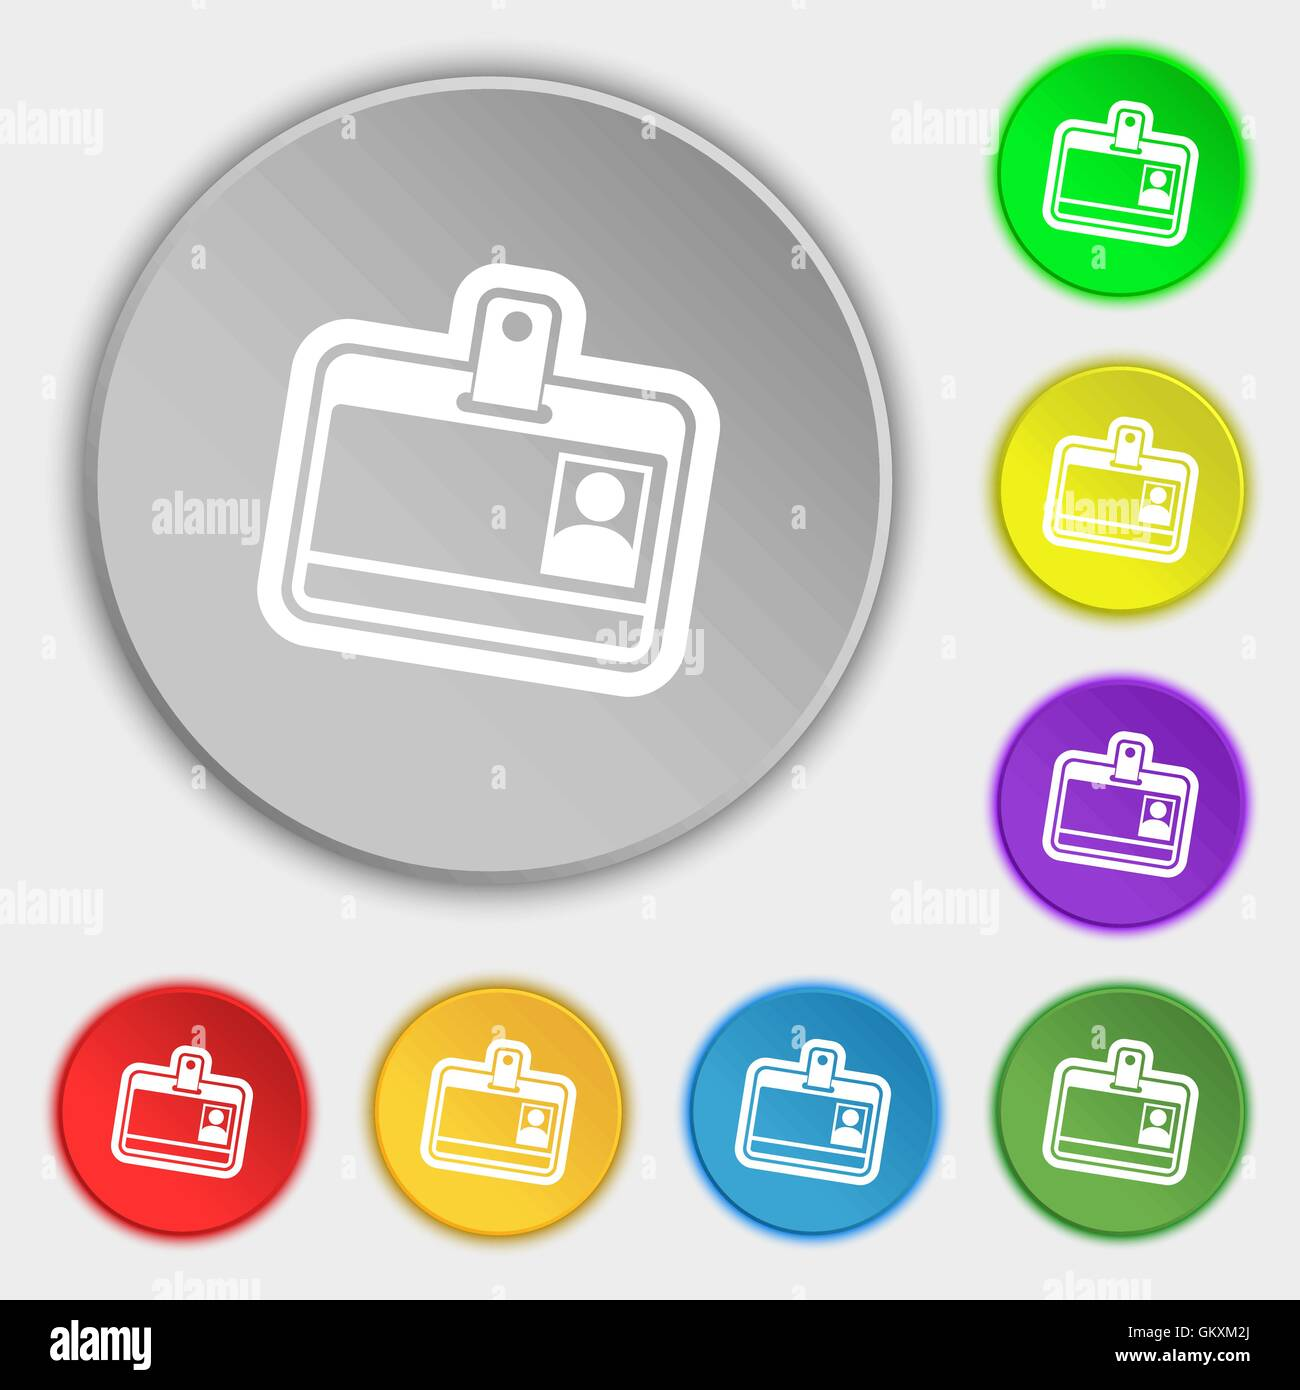 Employee Id Card Icon Vector Stock Vector Images - Alamy